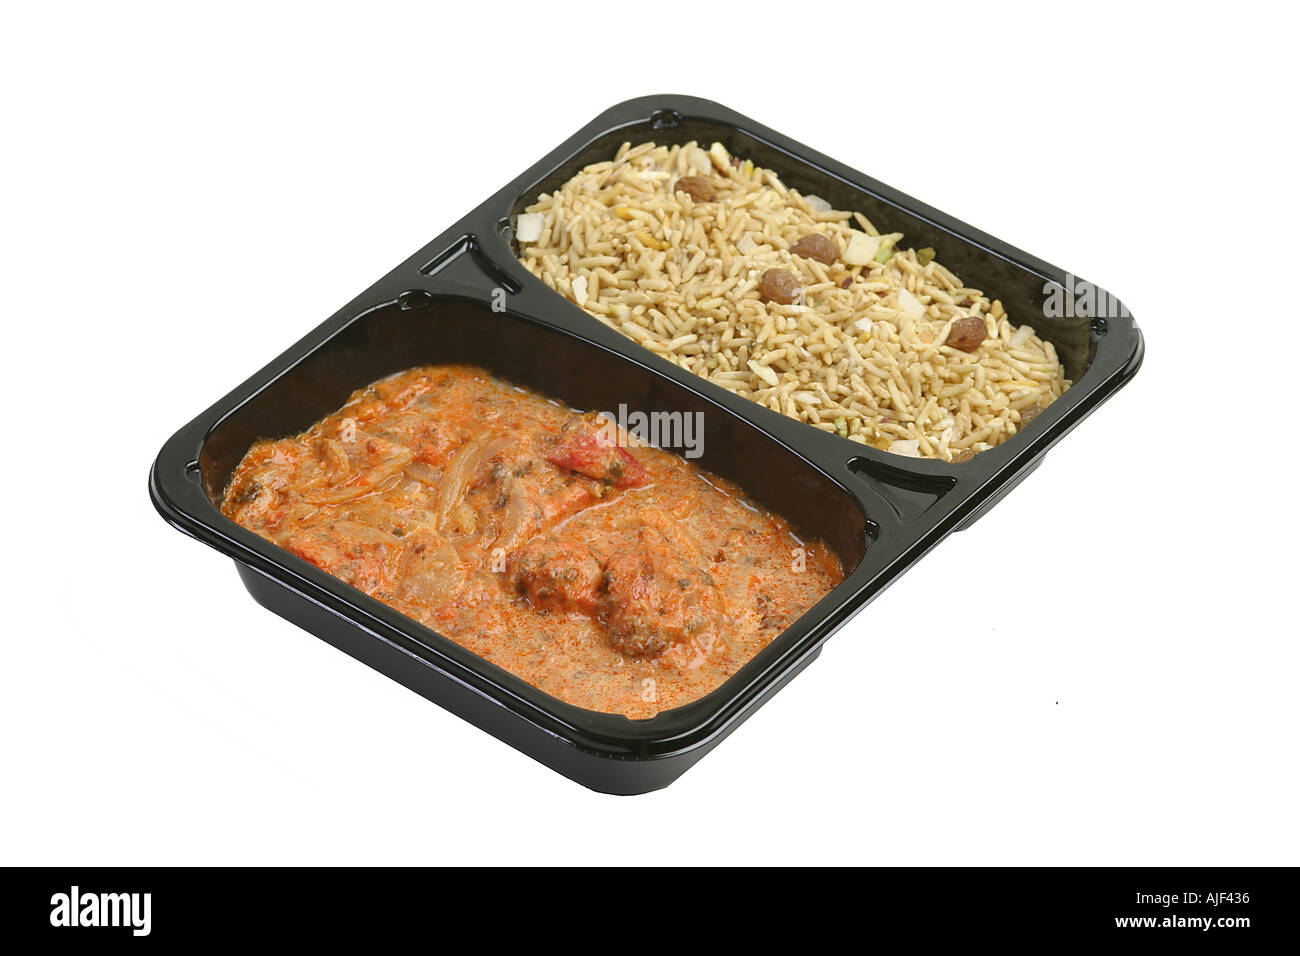 Microwaved curry in a plastic tray om a white background - Stock Image